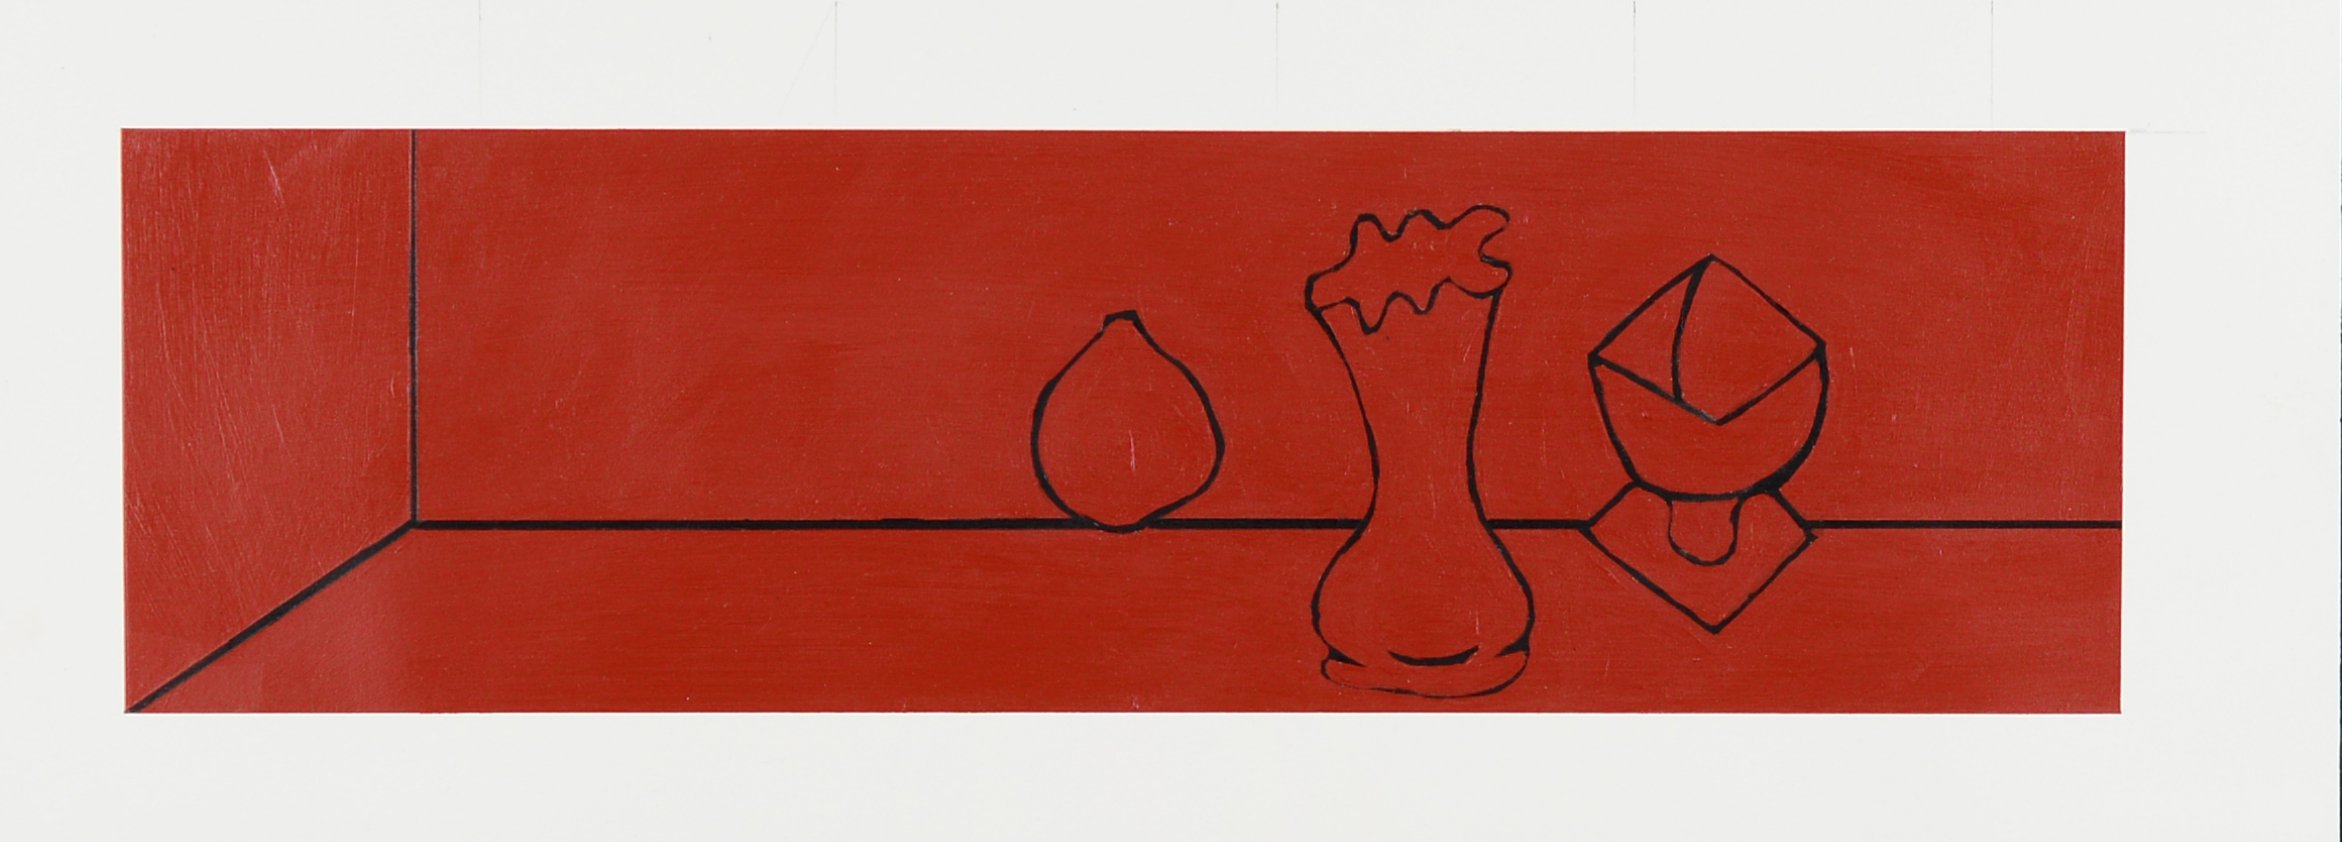 Monochrome Collective : Gary Kret : Would the Underworld be Red Series #5 : Acrylic on paper : 4 x 13.5 in. : $850.jpg